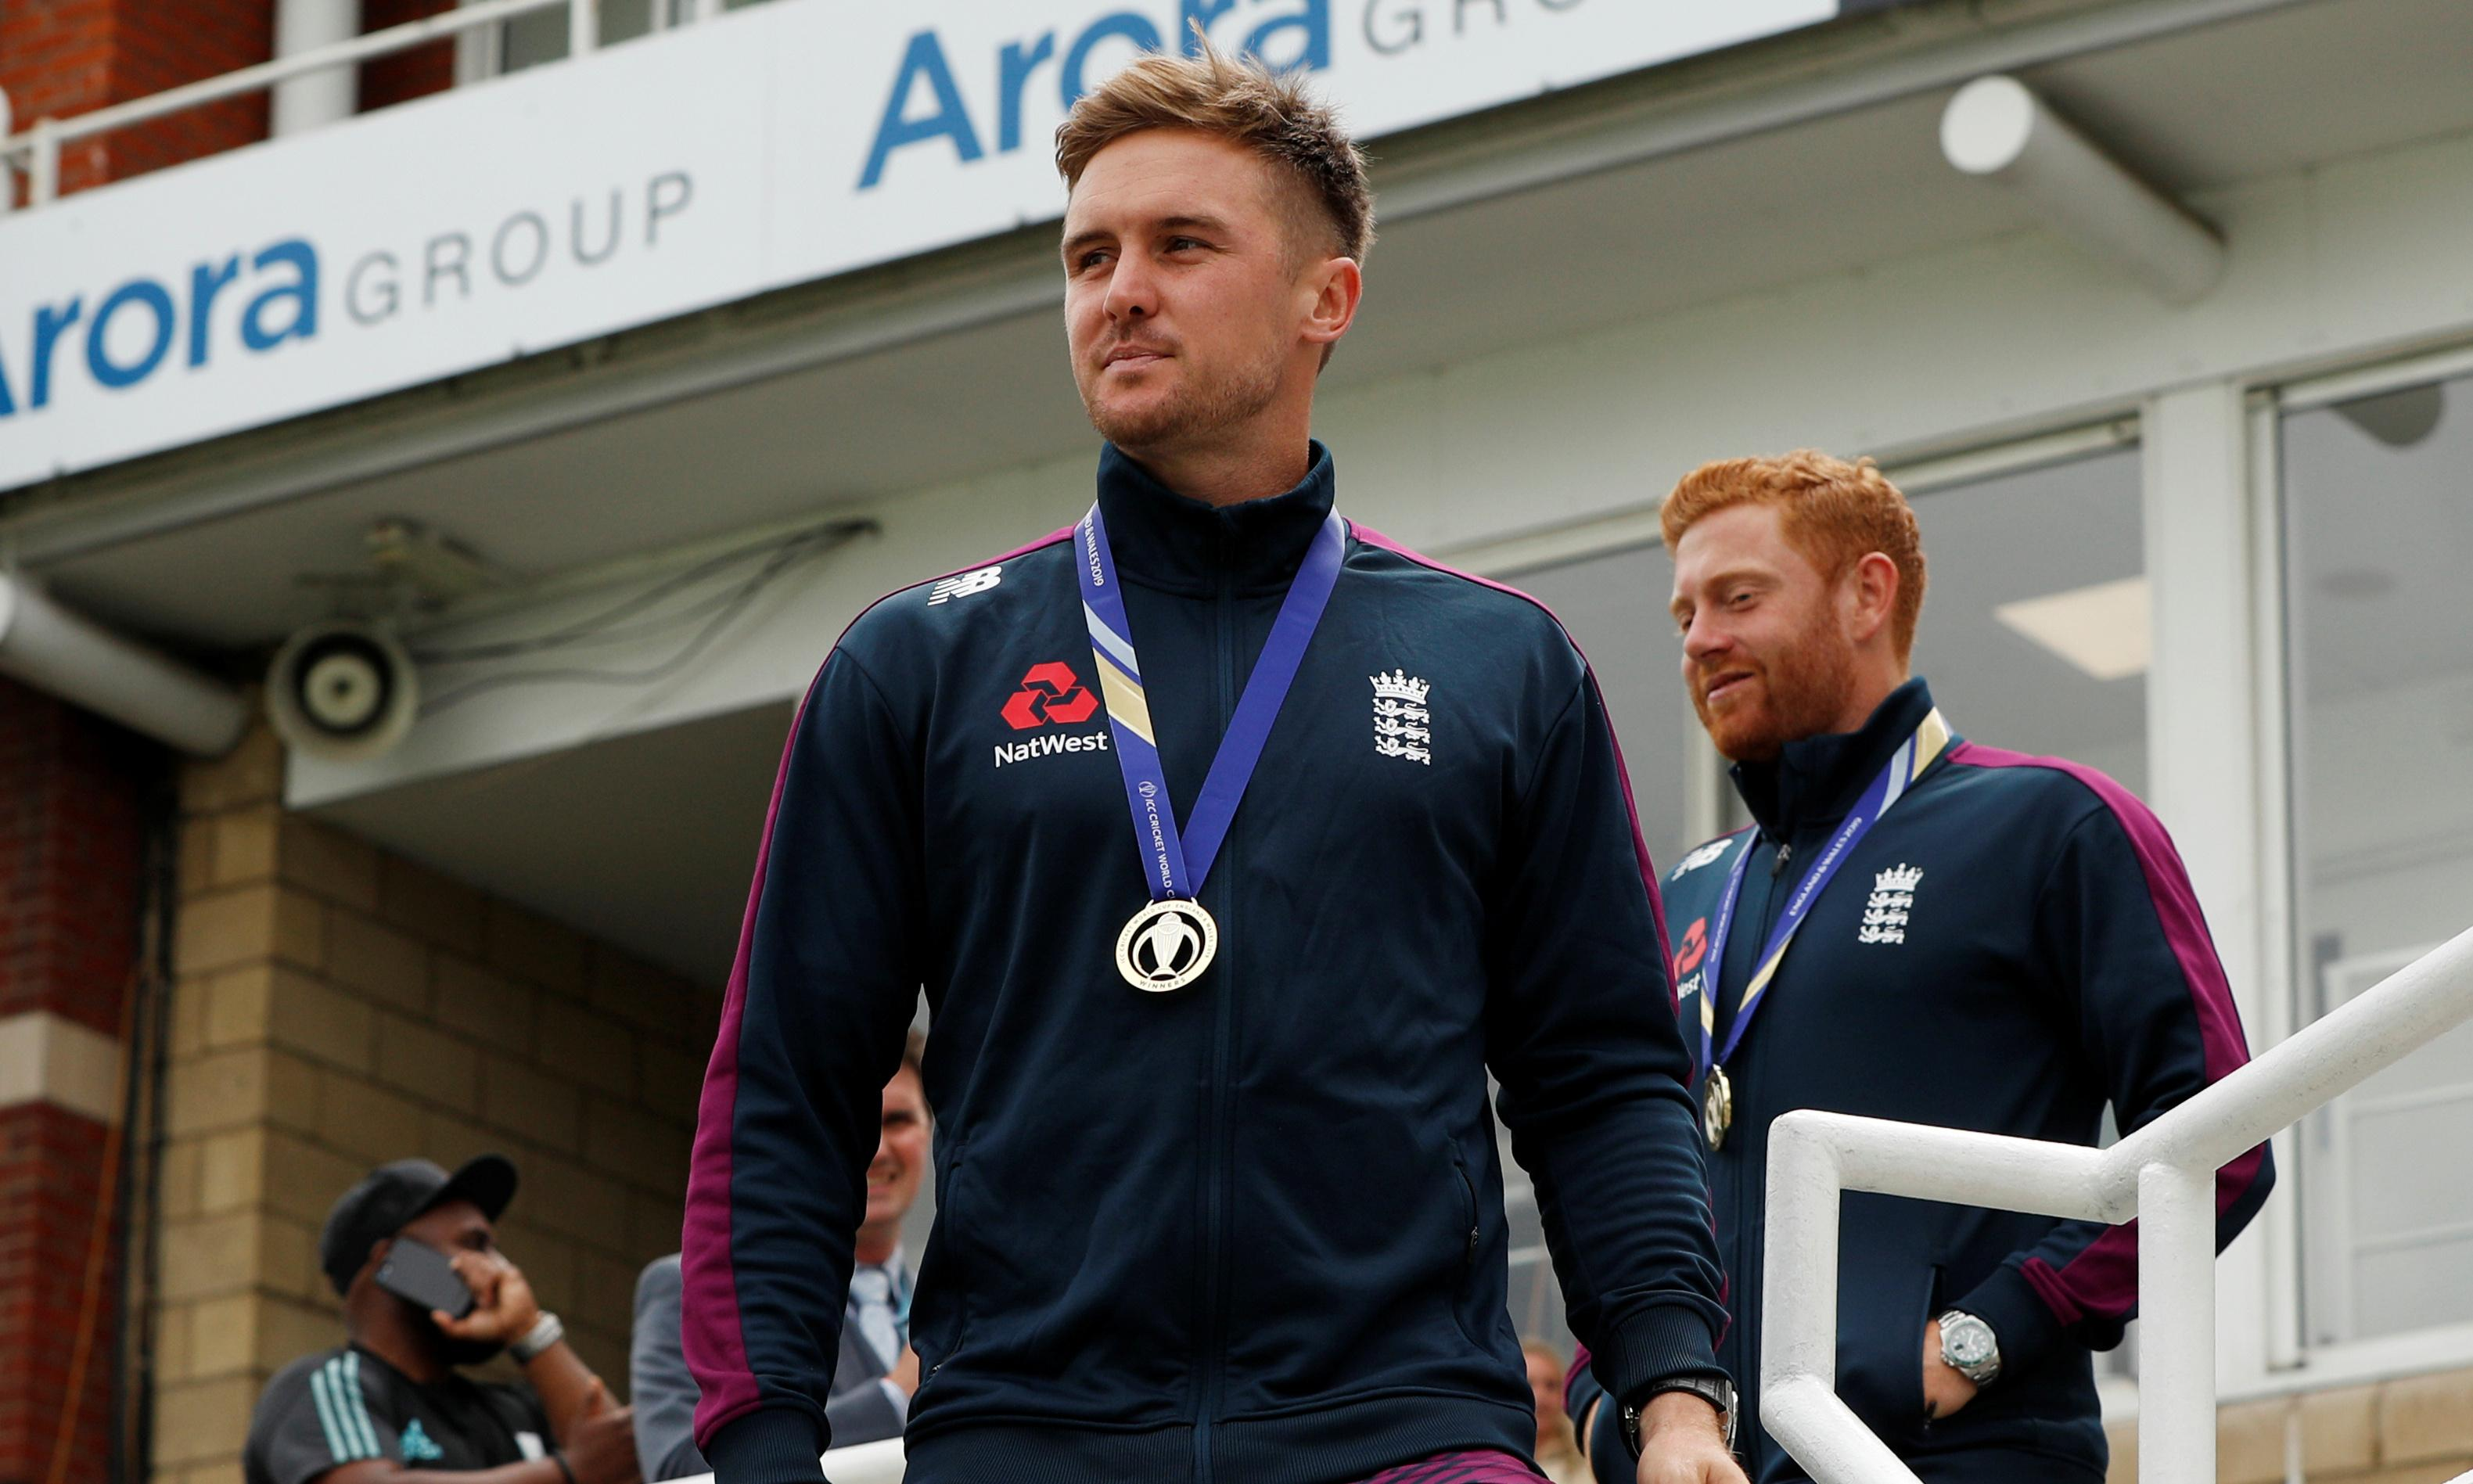 Jason Roy set to feature in Ashes after first England Test call-up